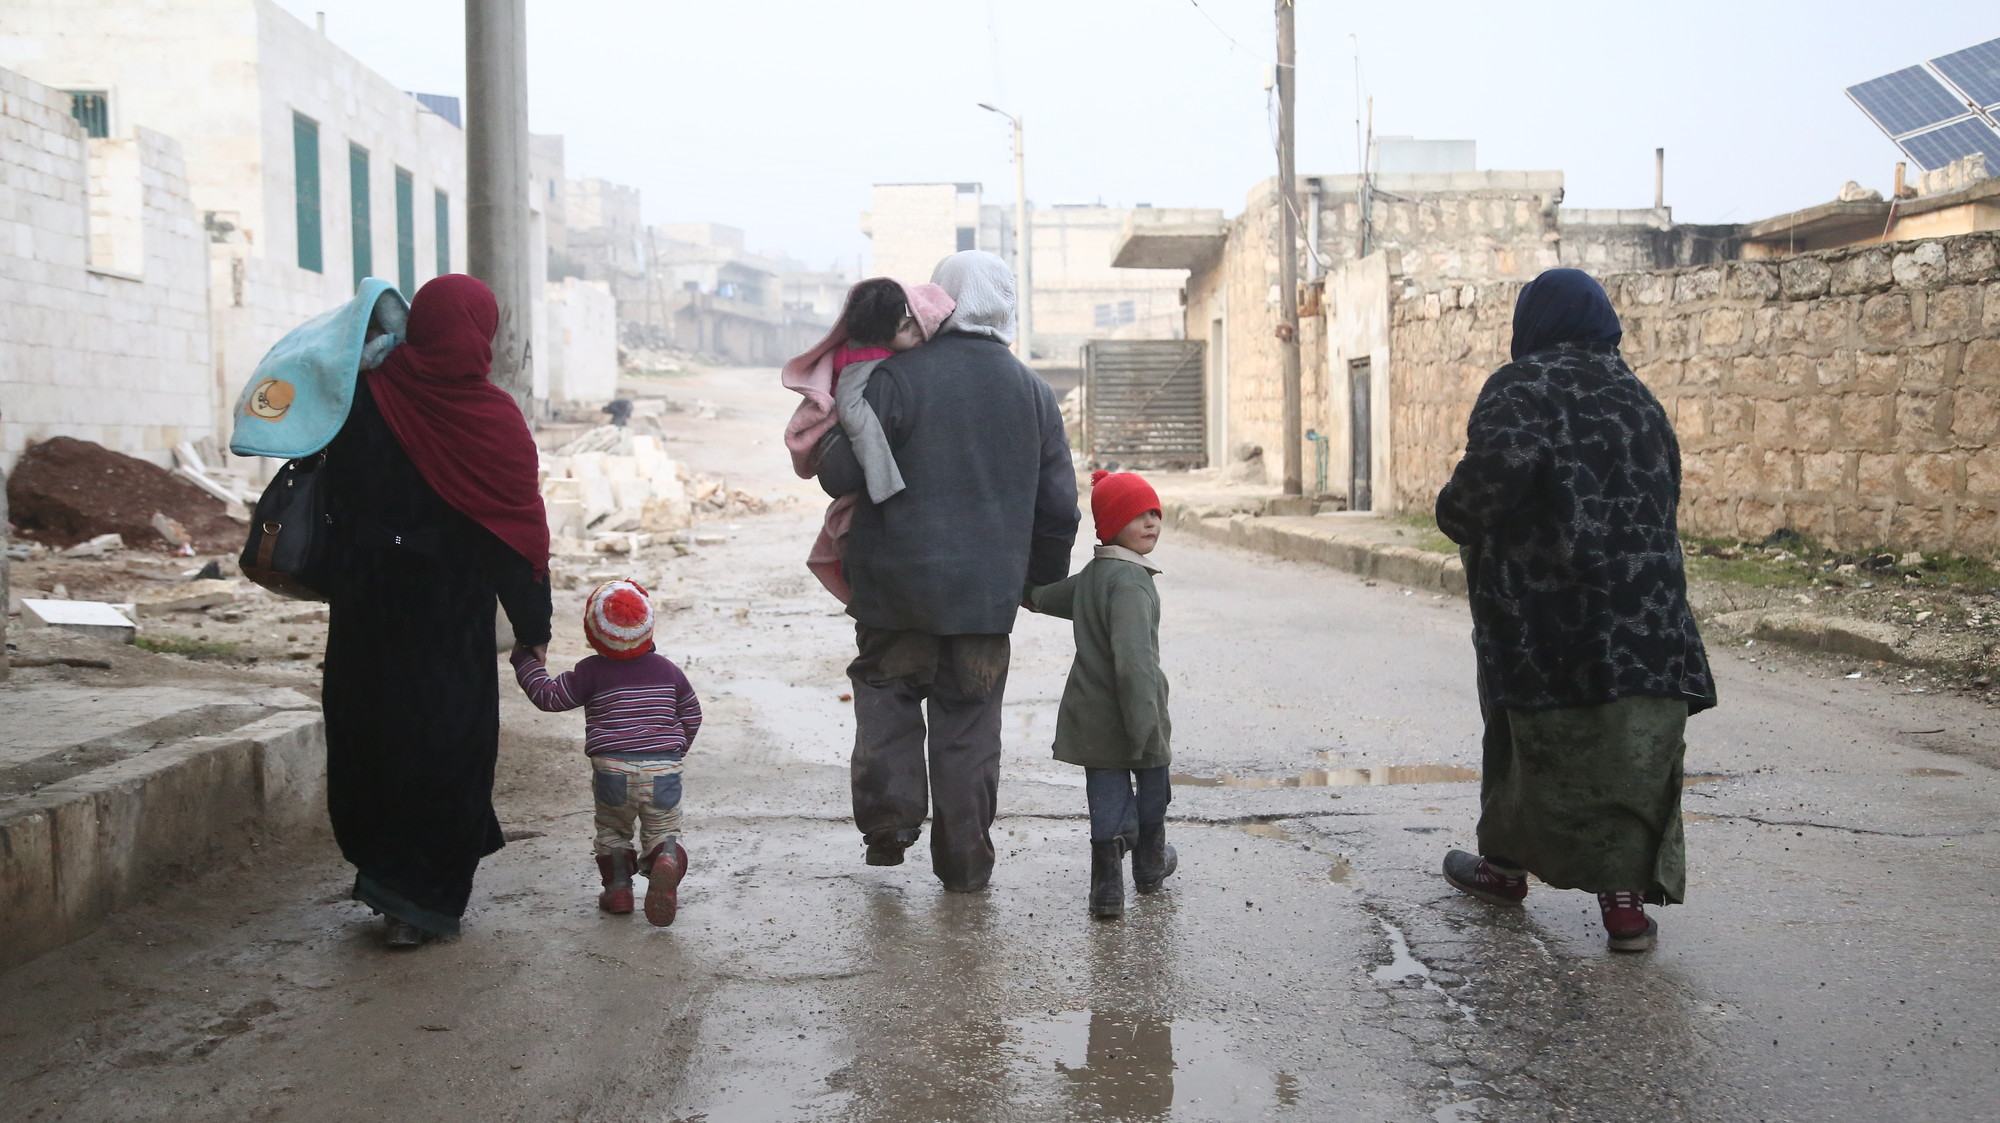 A group of children and adults walk in winter clothes in a bombed out city.